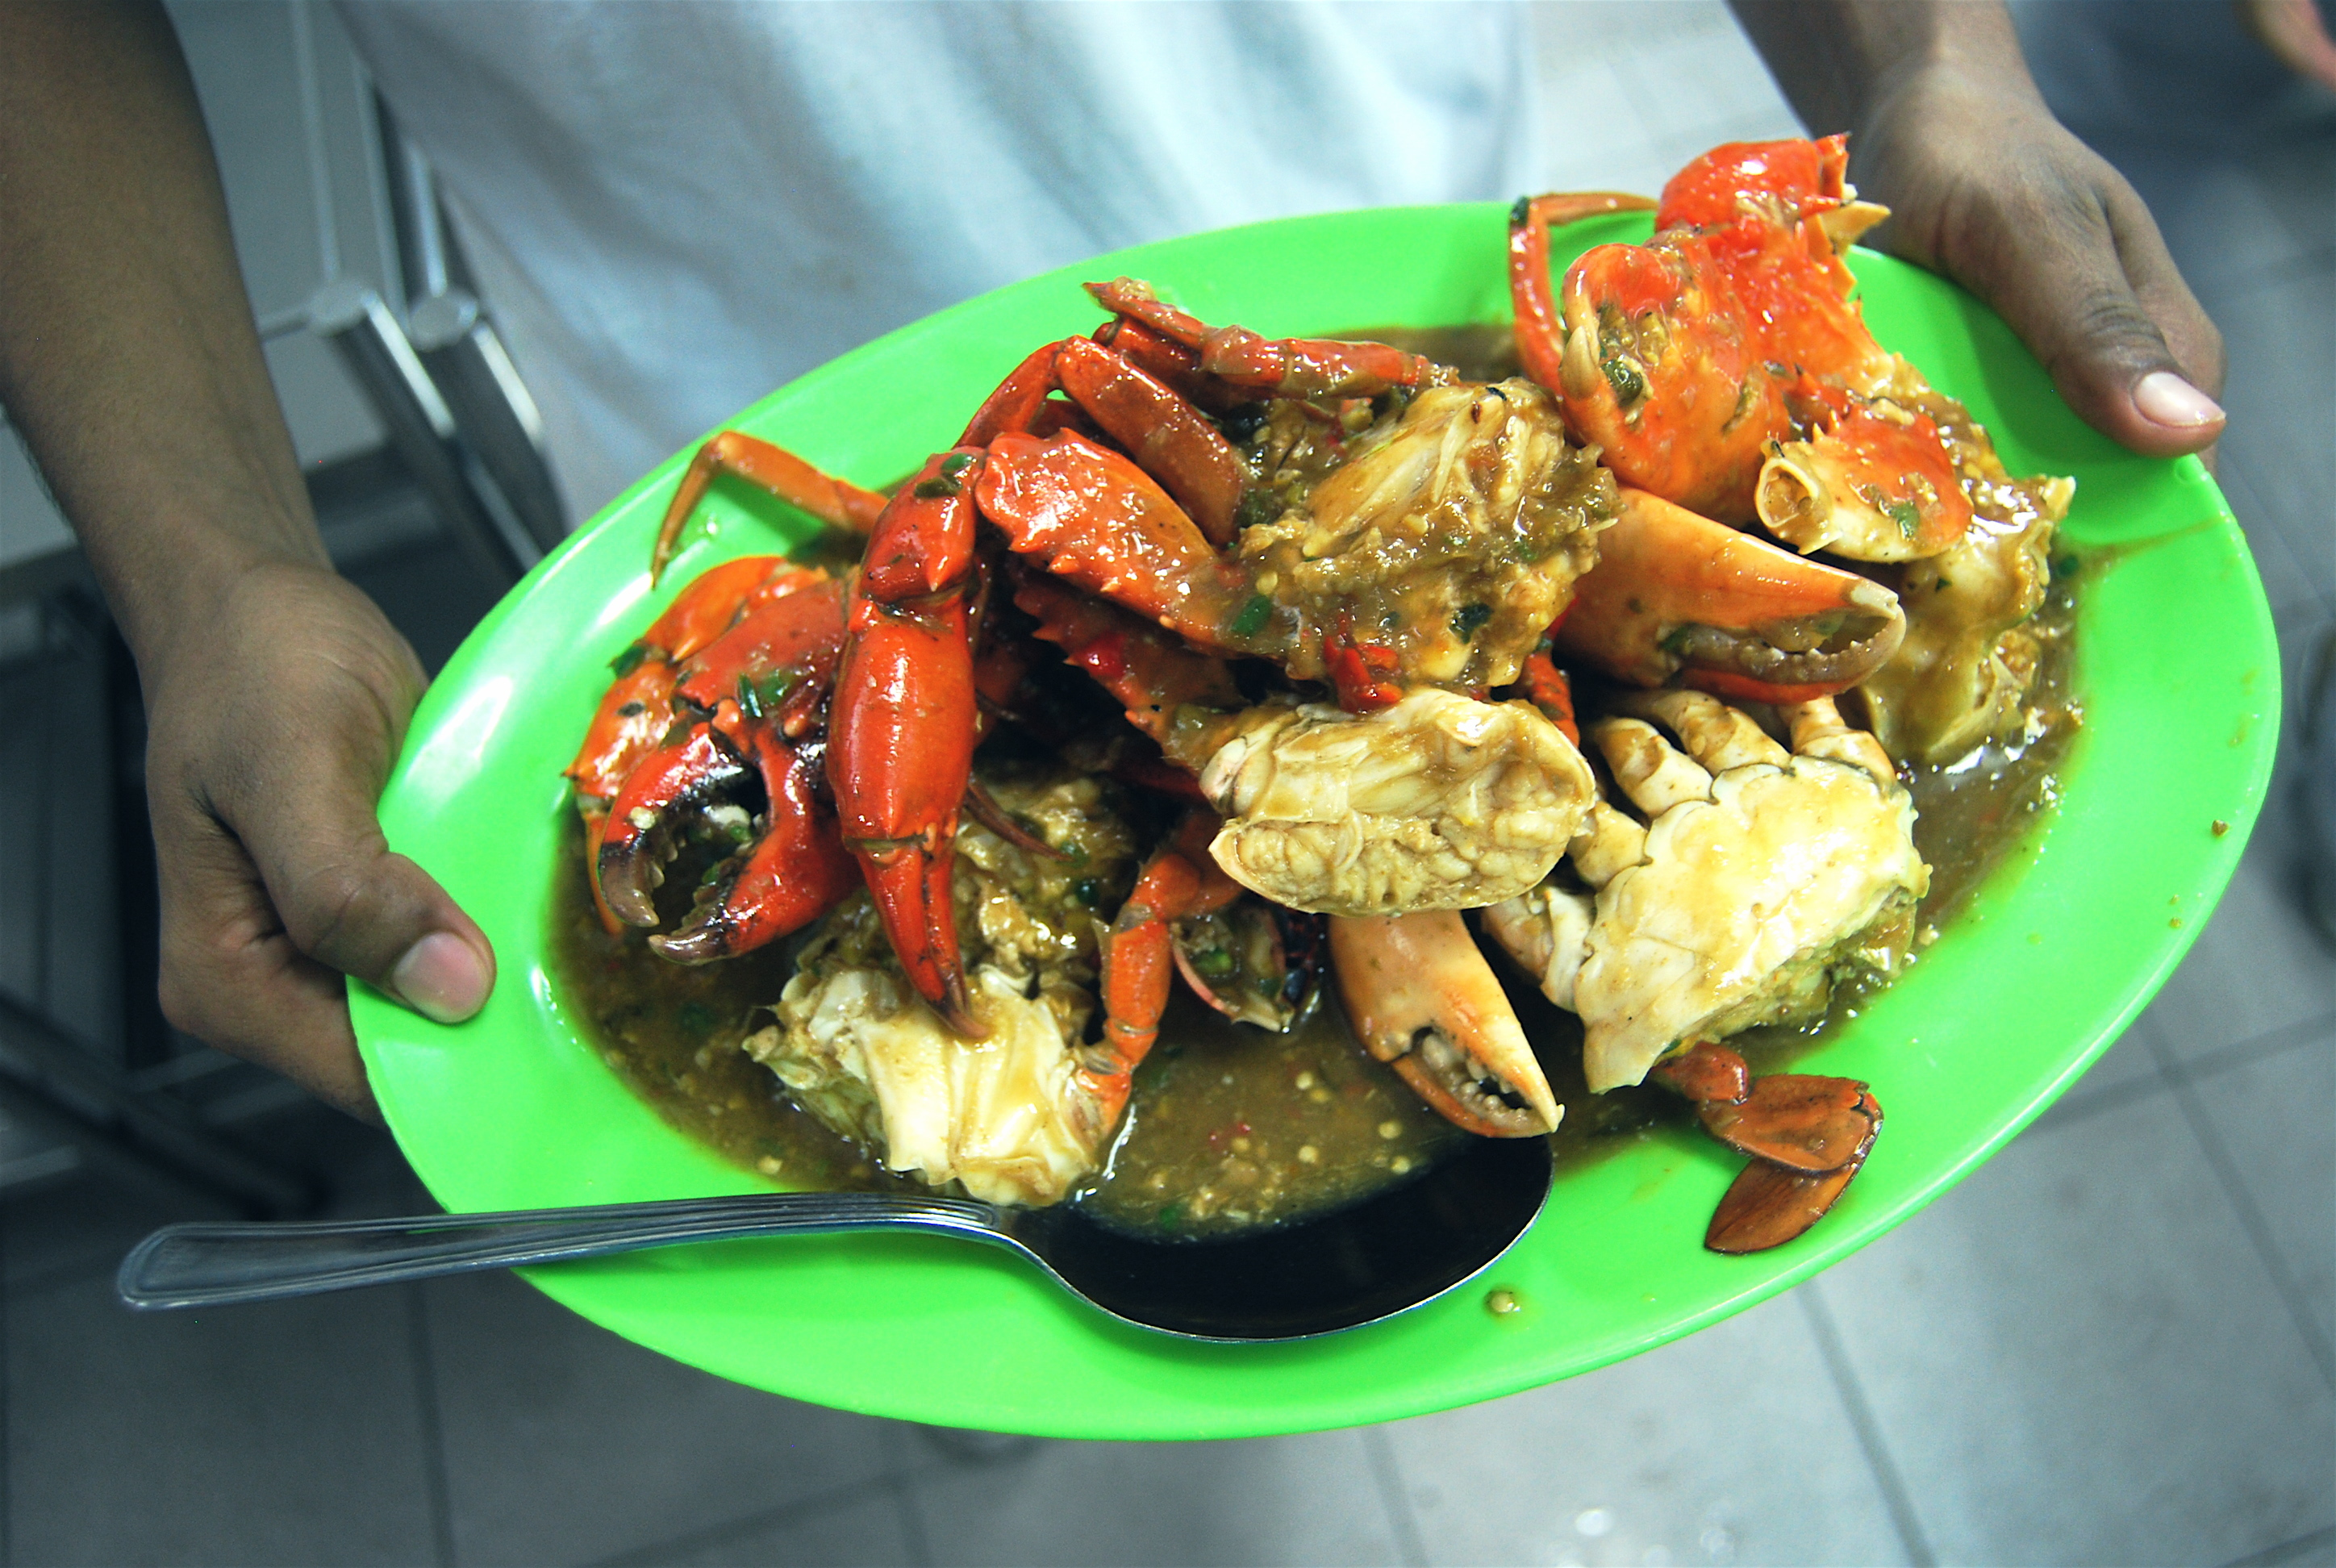 Best place for seafood: Restaurant Fatty Crab